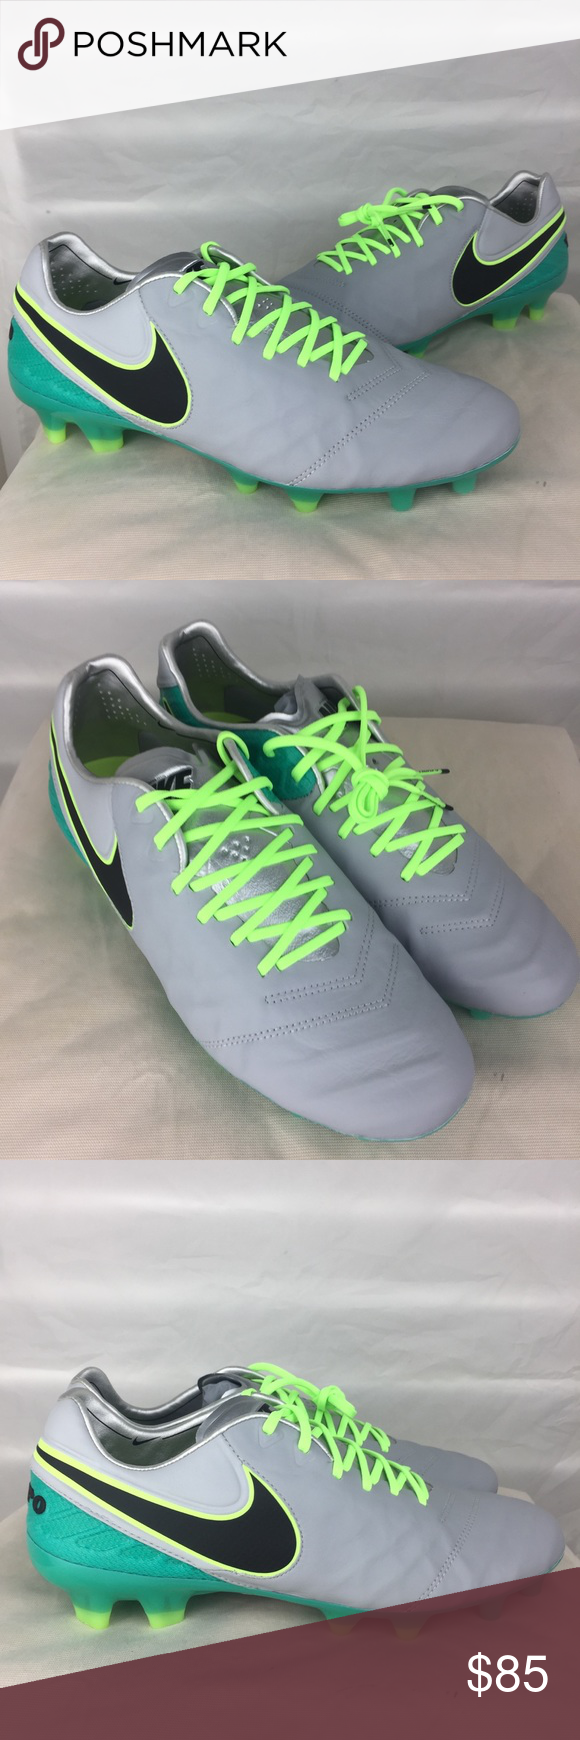 quality design 4c8a4 1468a Nike Tiempo Legend VI Wolf Grey Elite Pack Cleats New ...